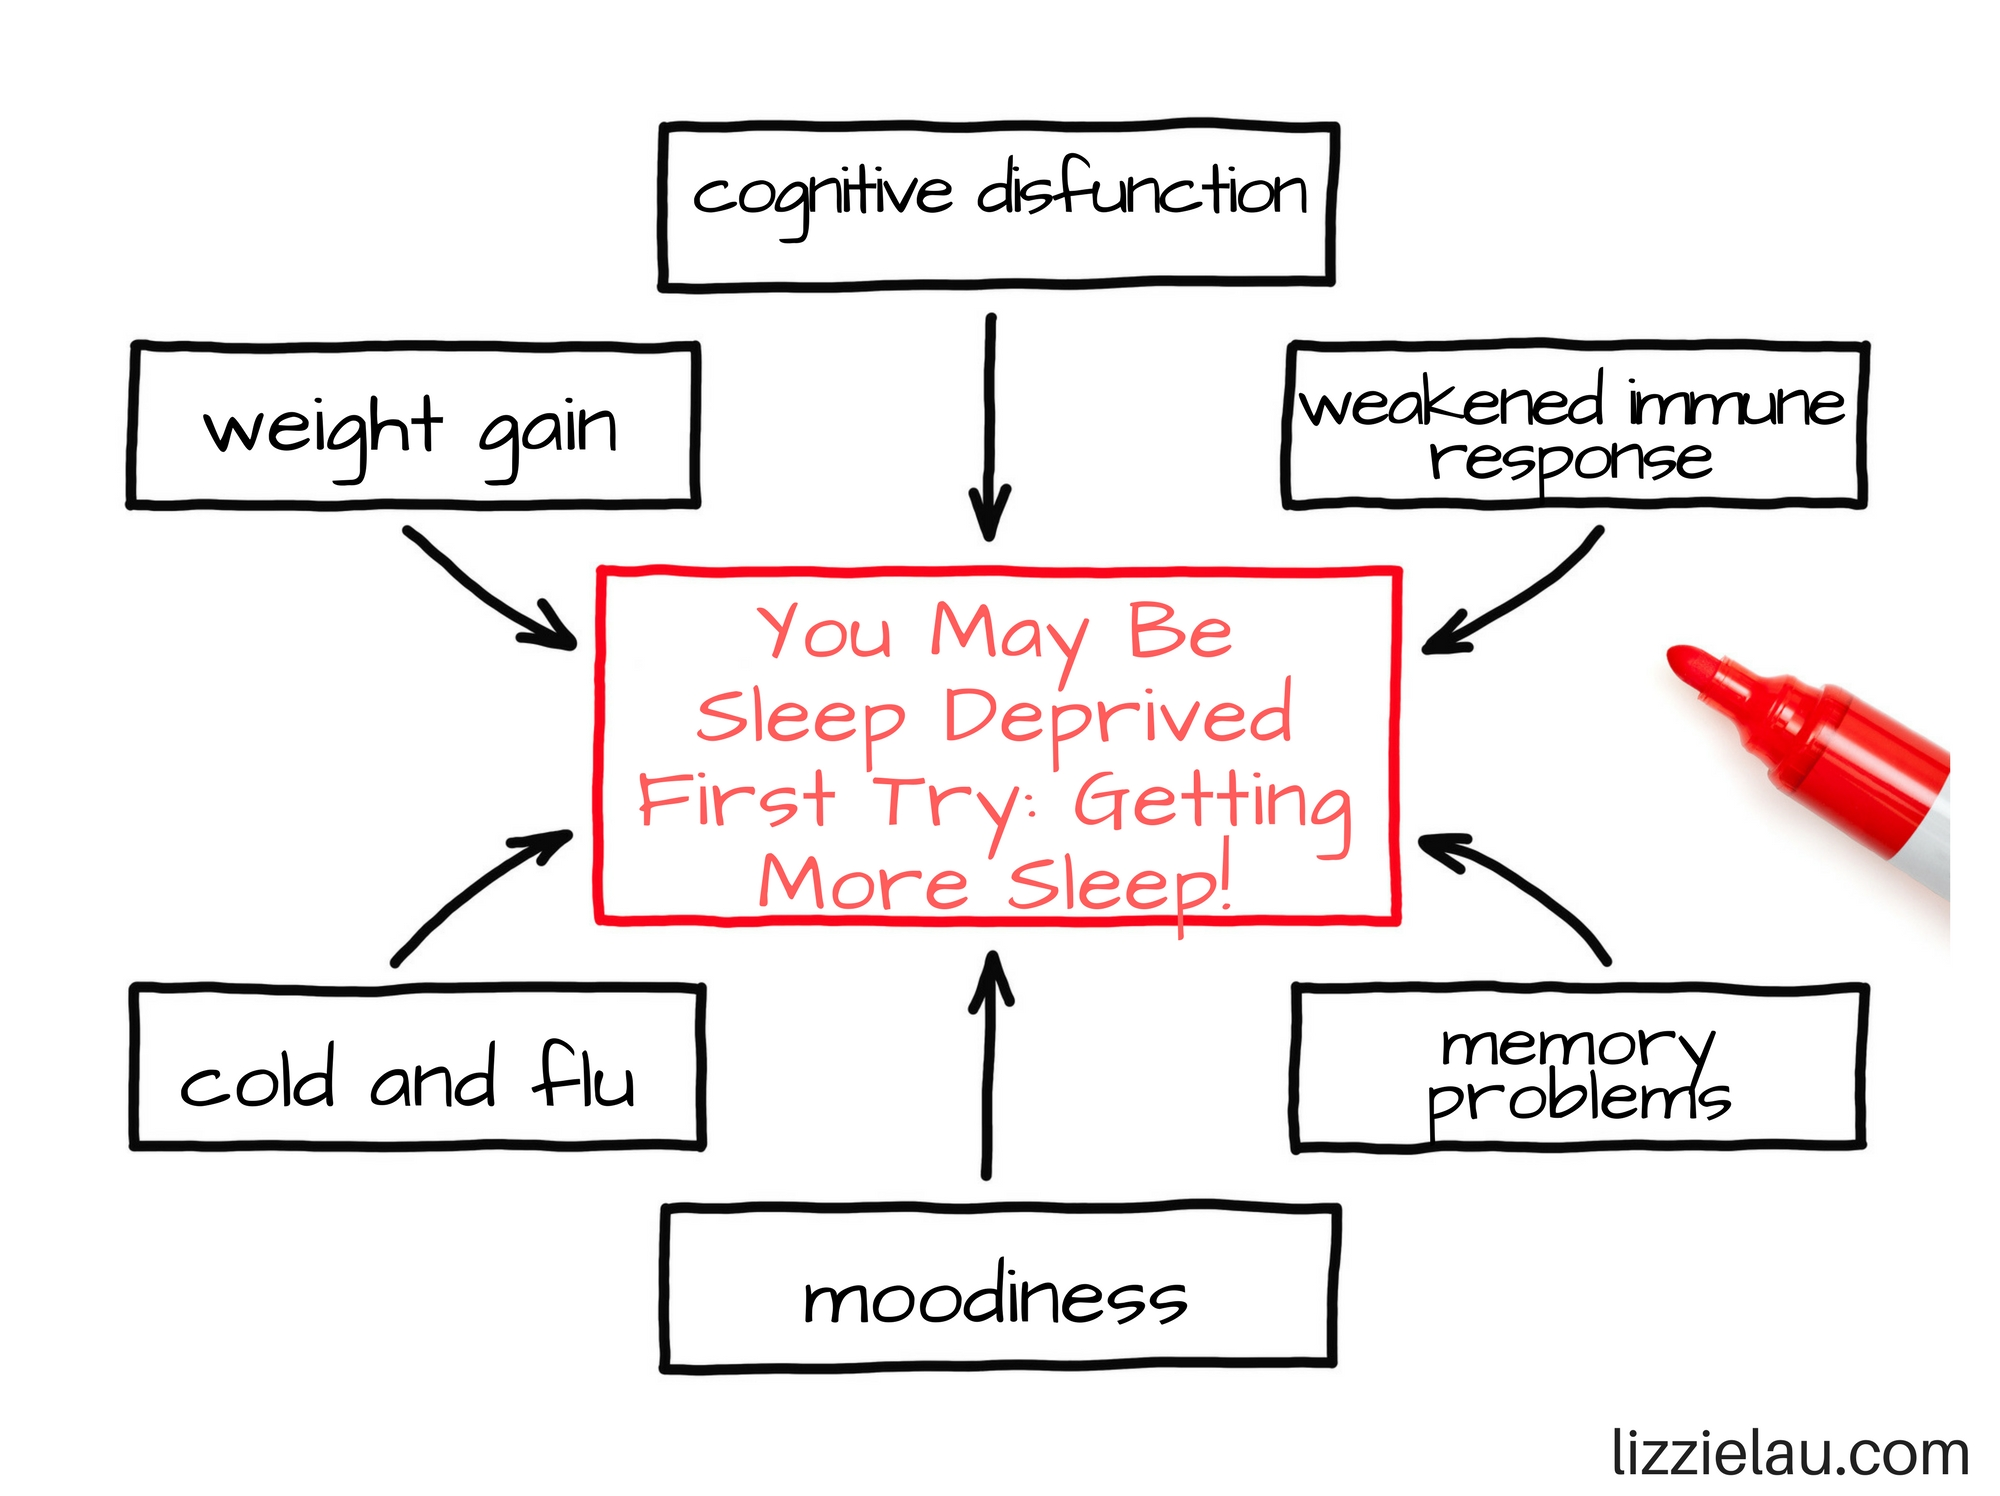 You May Be Sleep Deprived First Try Getting More Sleep